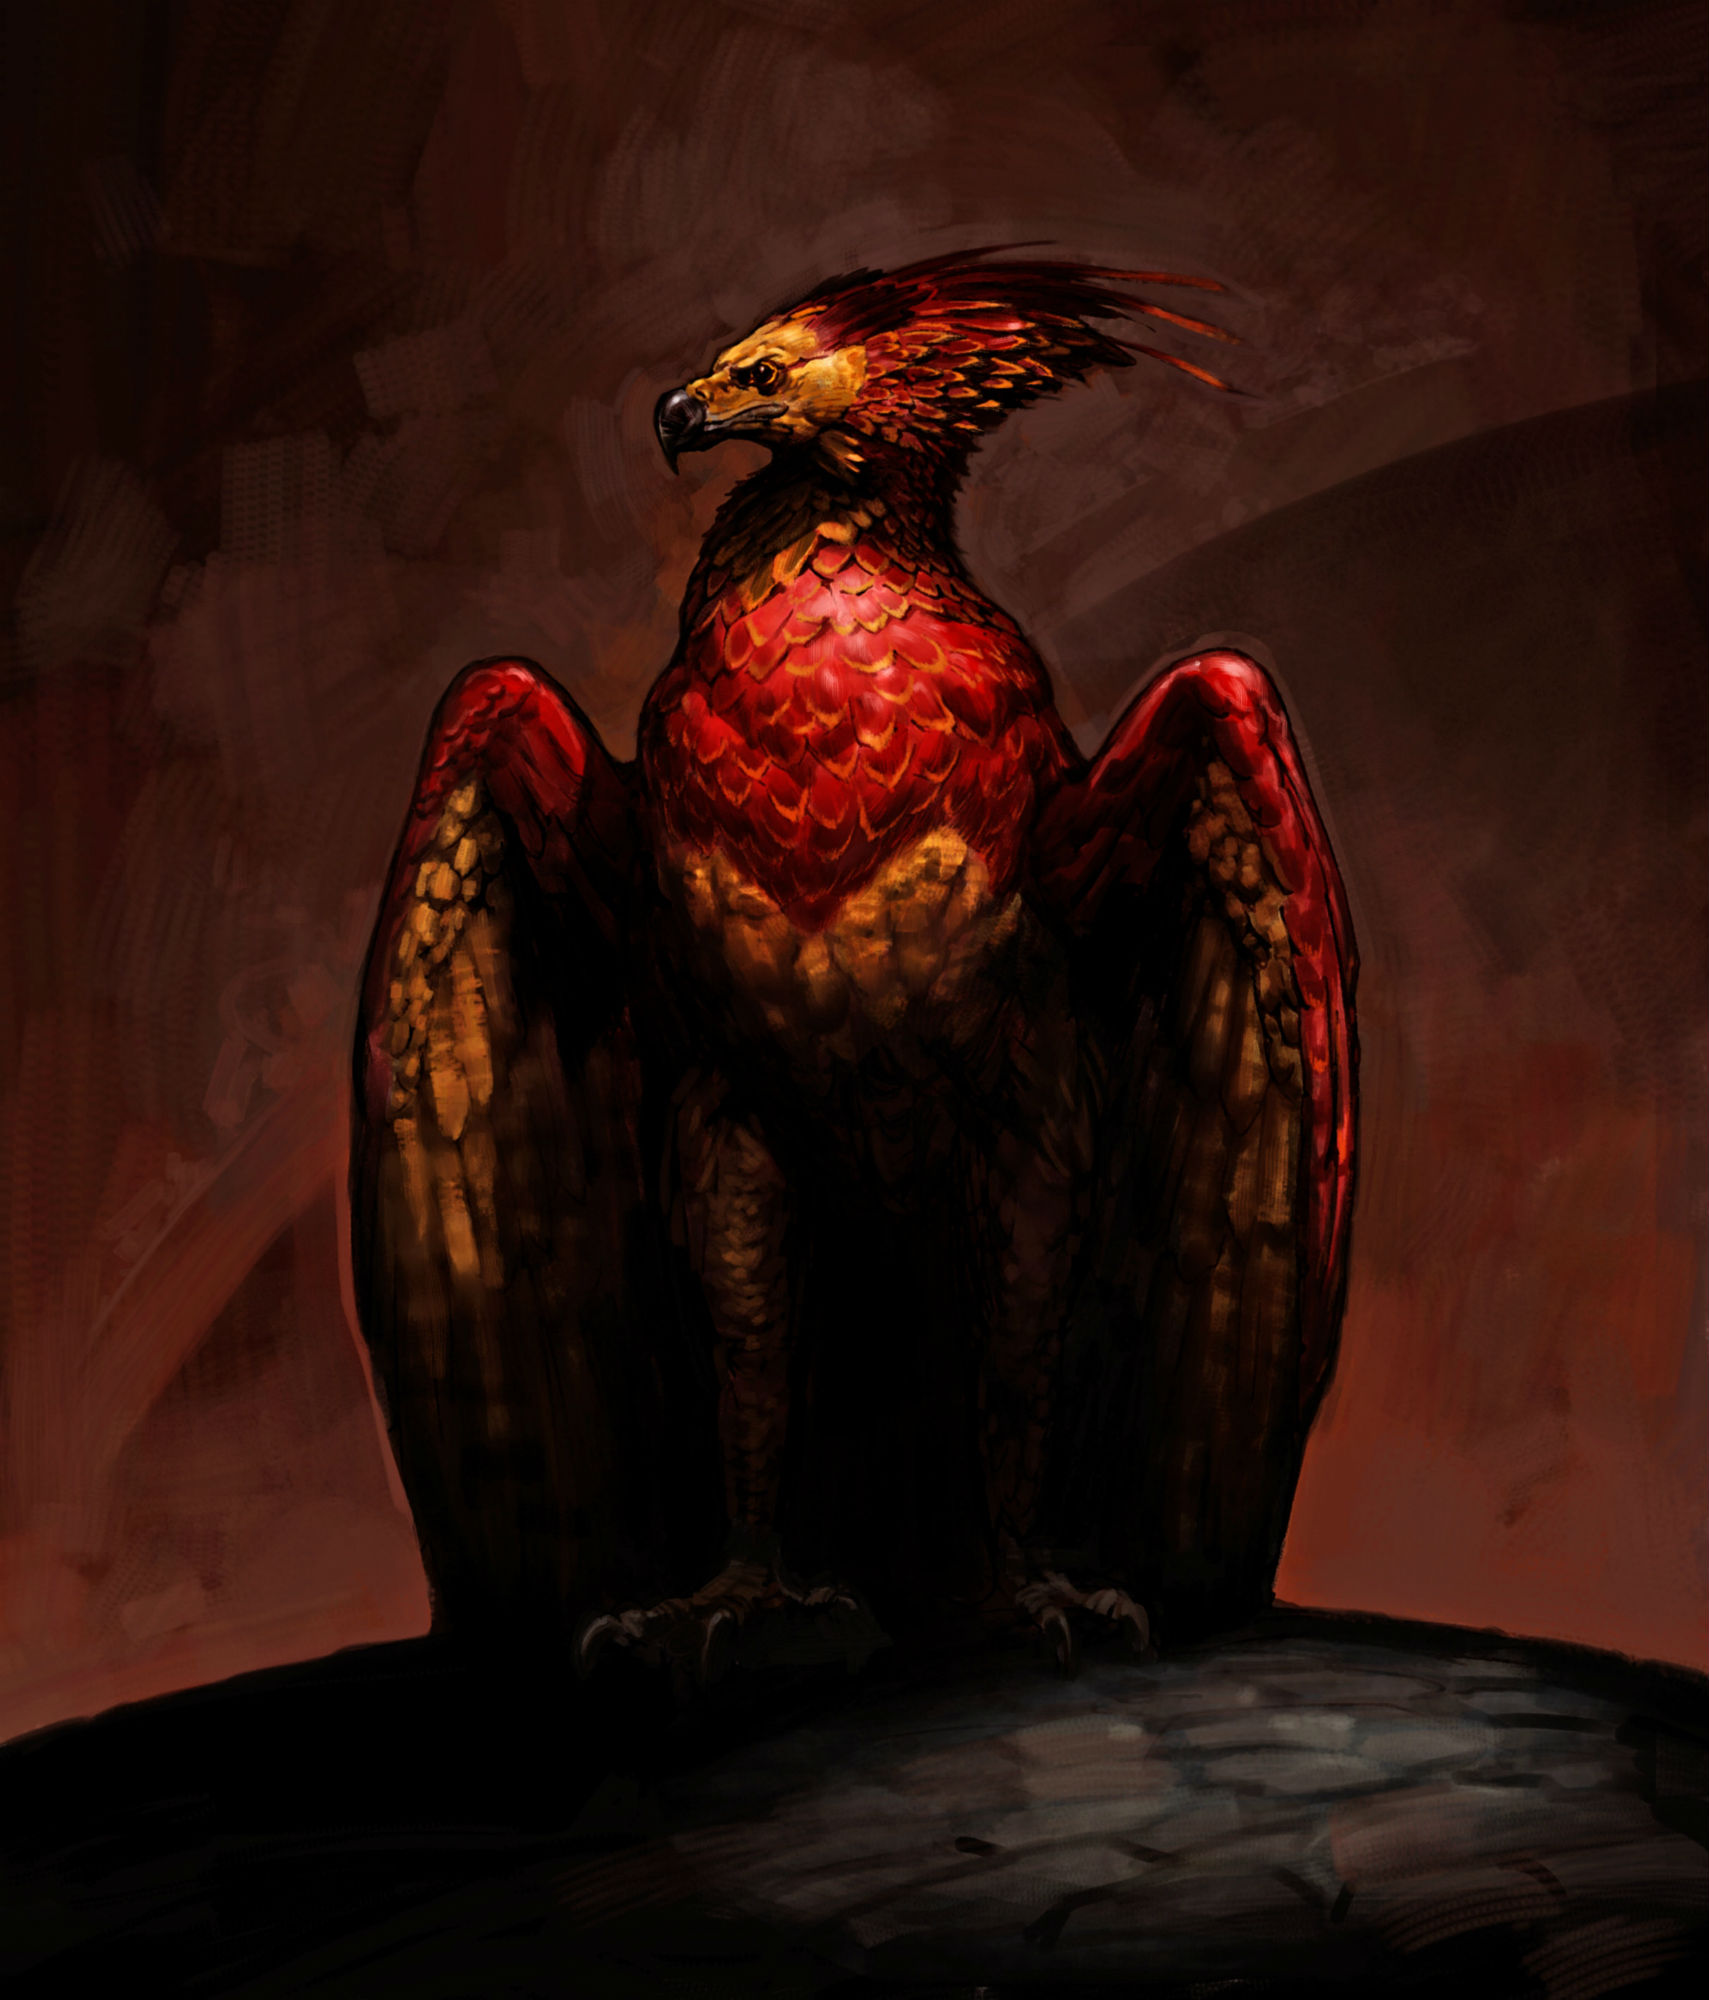 Fawkes Monster Legacy the josh potter show is out every tuesday on the ymh youtube channel and wherever you listen to podcasts. fawkes monster legacy